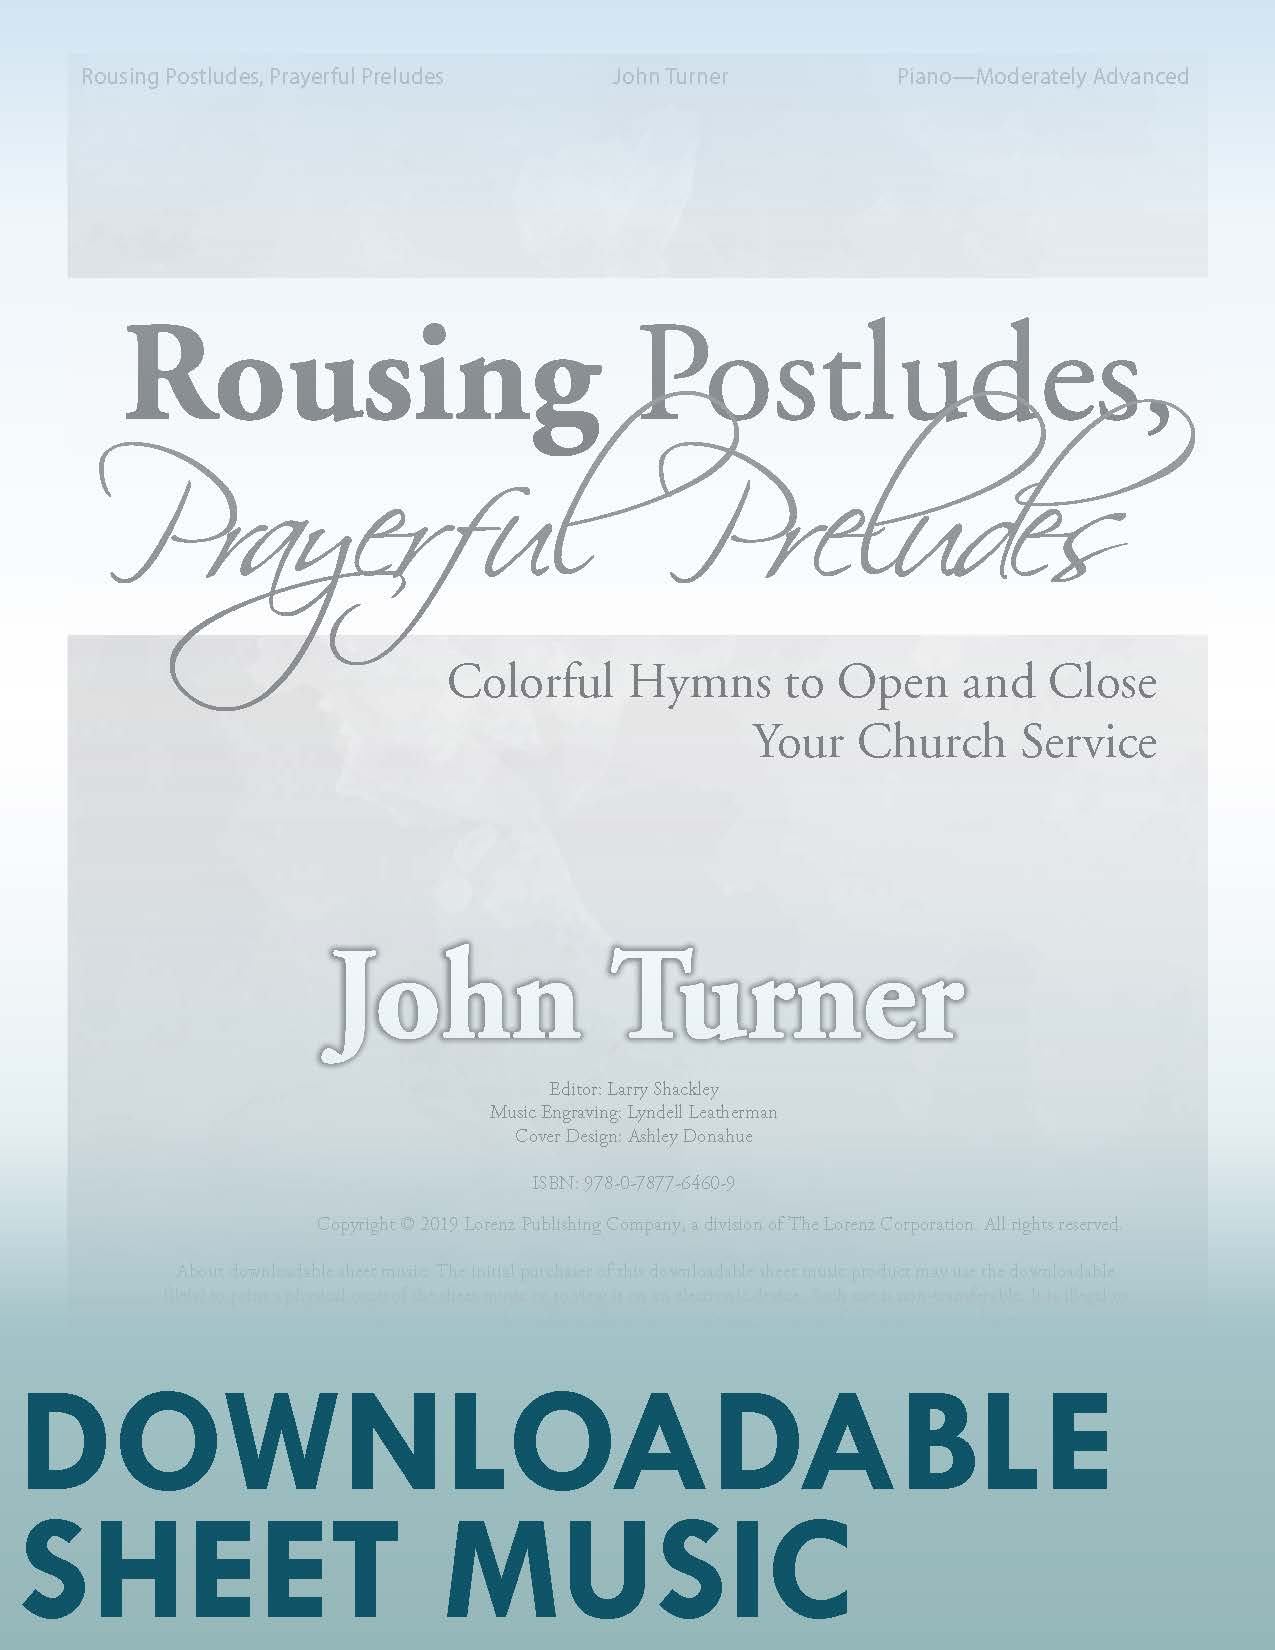 Rousing Postludes, Prayerful Preludes - Digital Download